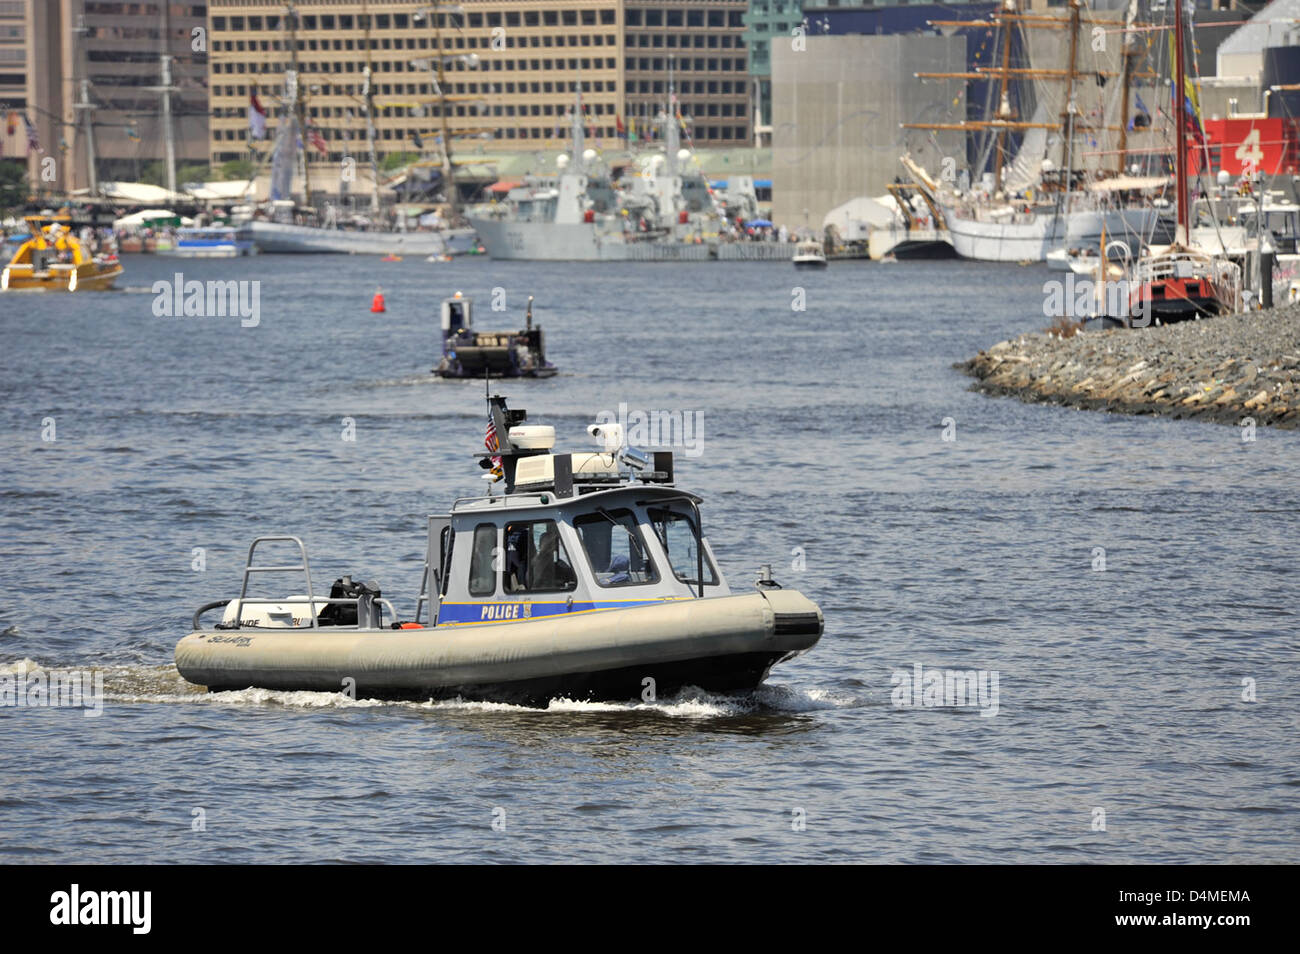 Baltimore City Police Marine Unit assist USCG with safety zone enforcement - Stock Image